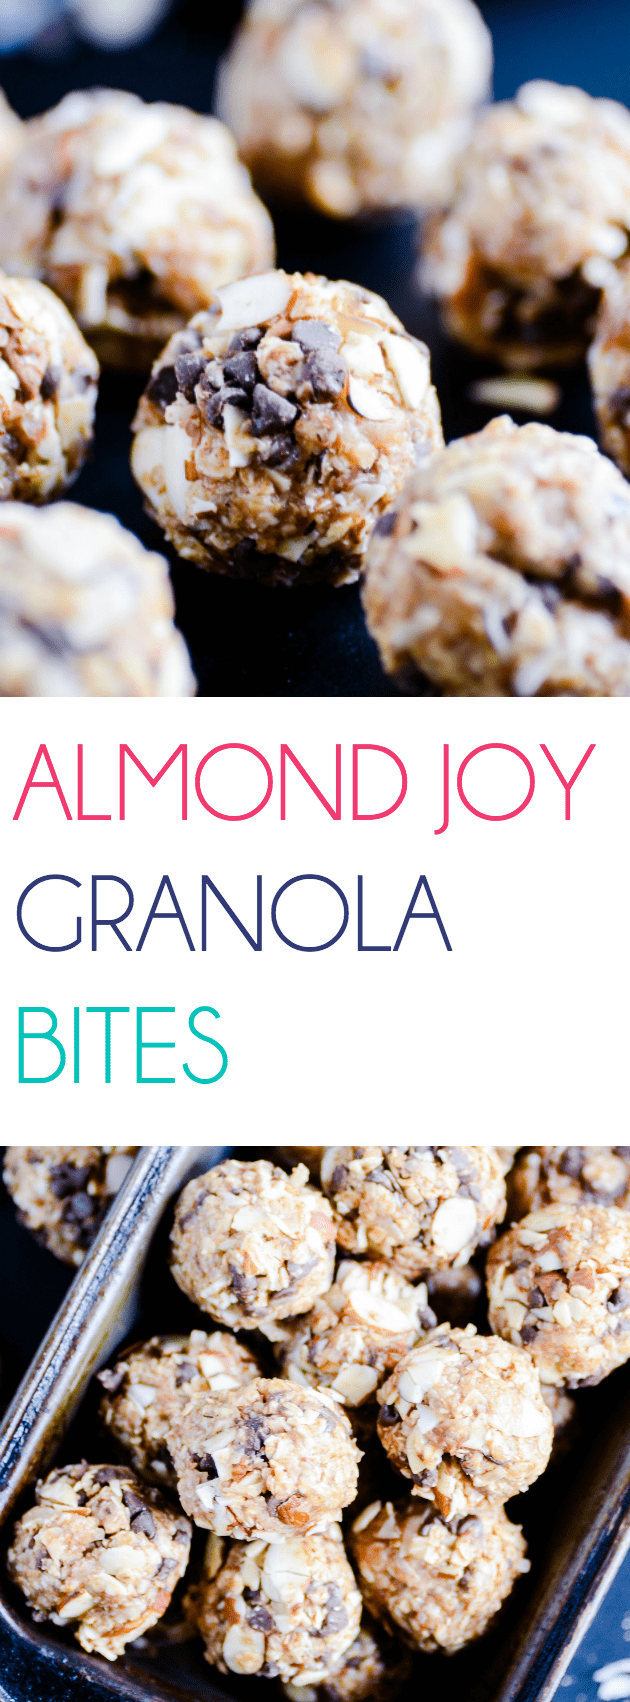 These bite-sized treats pack in the healthy fats and wholesome grains little ones need to start the day with lasting energy. Plus, they taste like Almond Joy cookies!